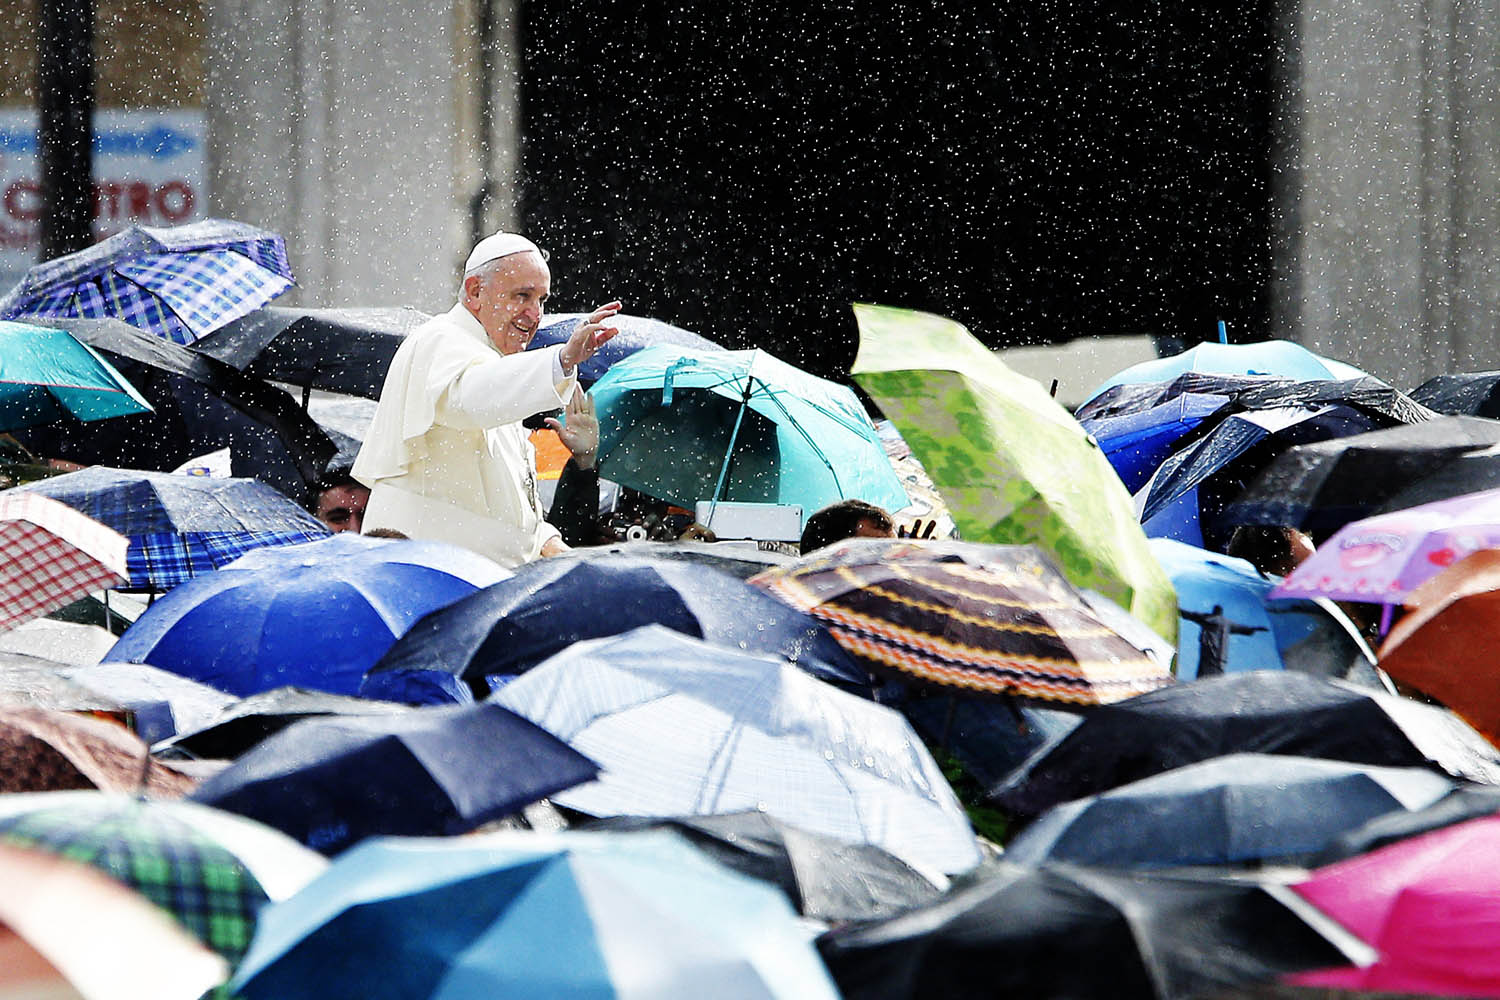 Oct. 9, 2013. Pope Francis greets the faithful under the rain during the General Audience in St Peter's Square at the Vatican.